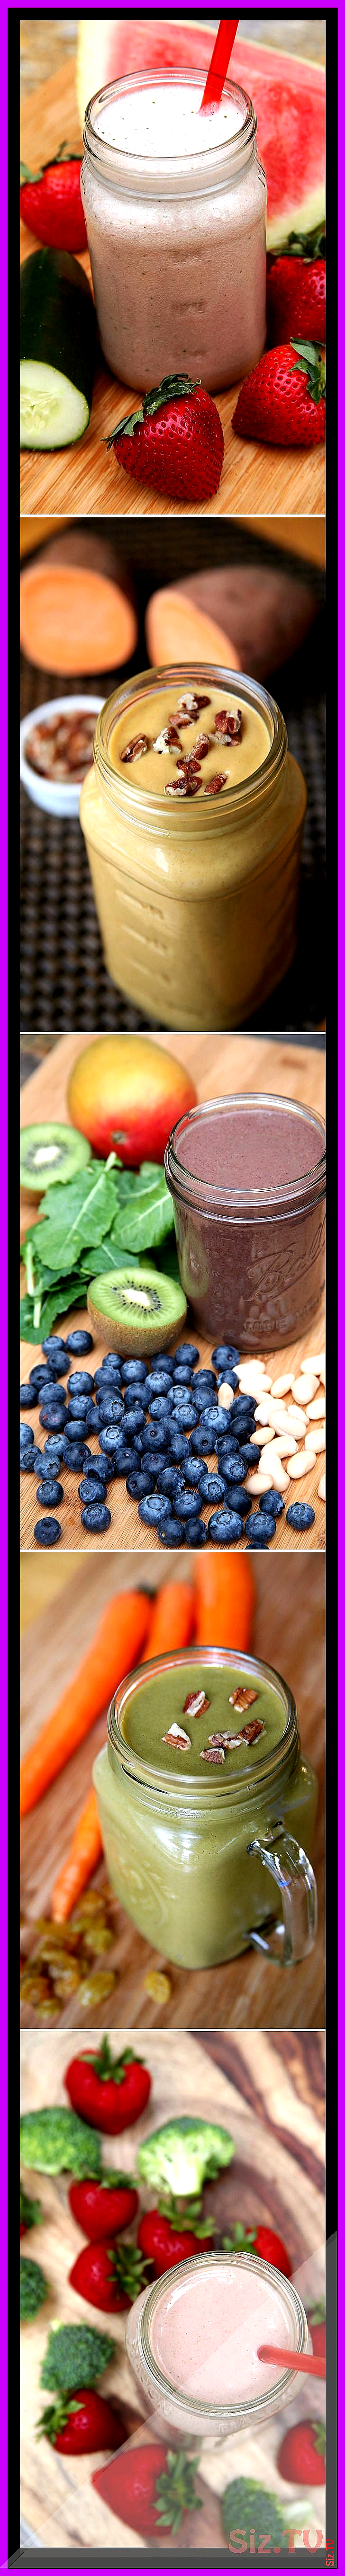 Eat More Veggies With This 7-Day Smoothie Challenge Eat More Veggies With This 7-Day Smoothie Challe...